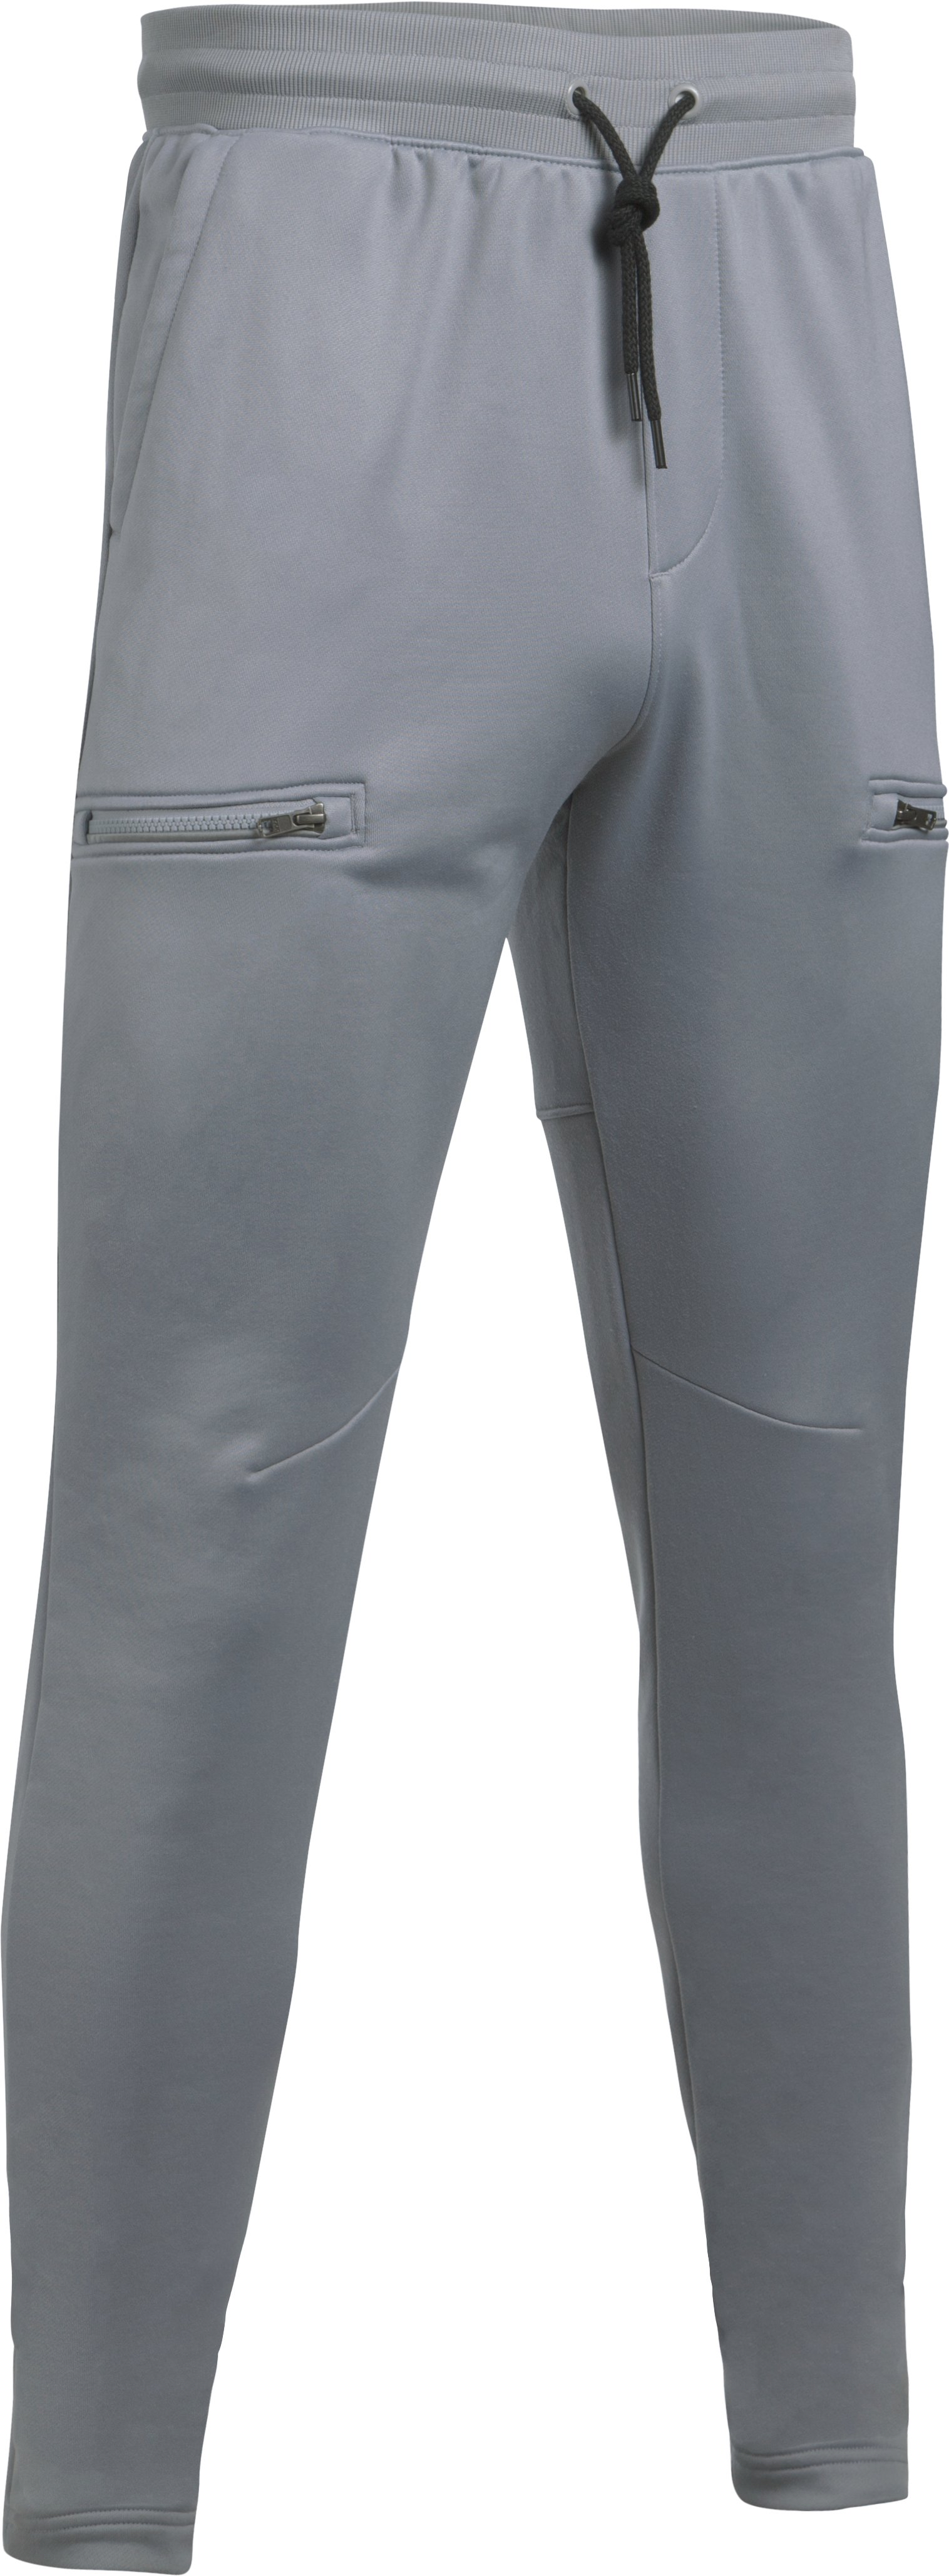 Men's SC30 Splash Tapered Pants, Steel